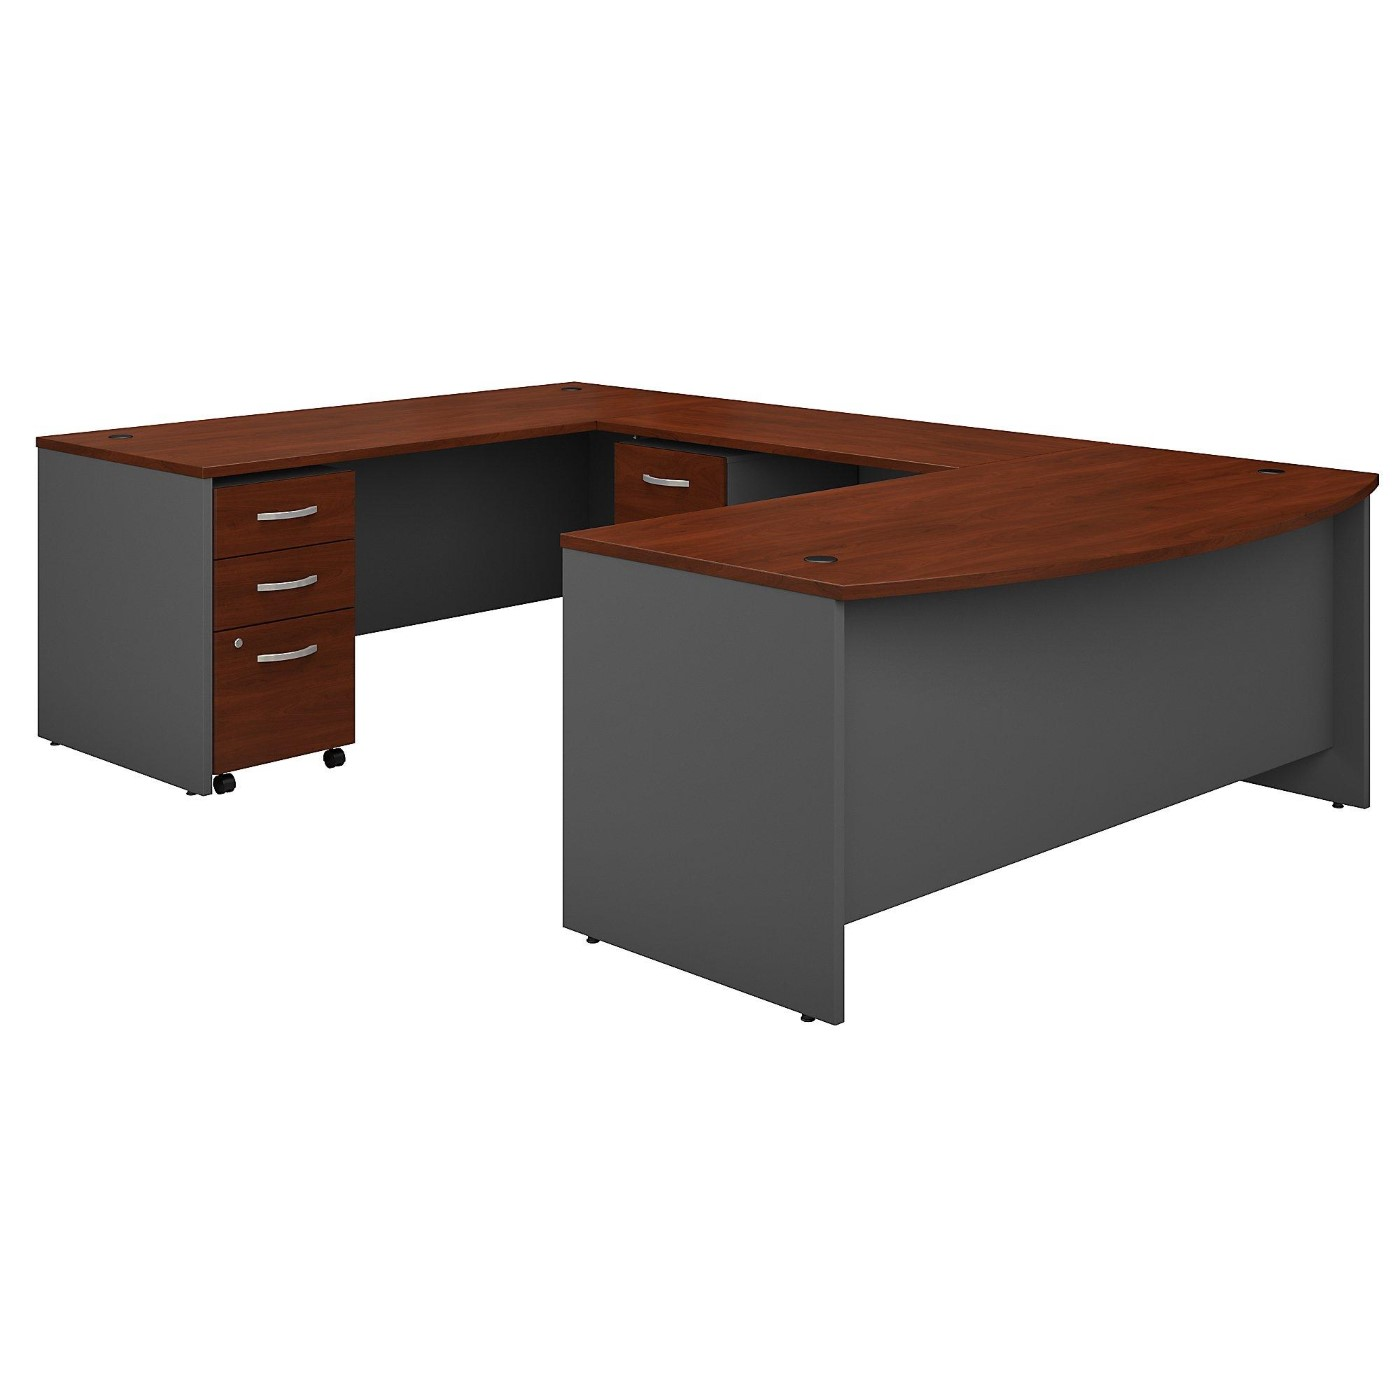 </b></font><b>BUSH BUSINESS FURNITURE SERIES C 72W X 36D BOW FRONT U SHAPED DESK WITH MOBILE FILE CABINETS. FREE SHIPPING</font>. </b></font></b>